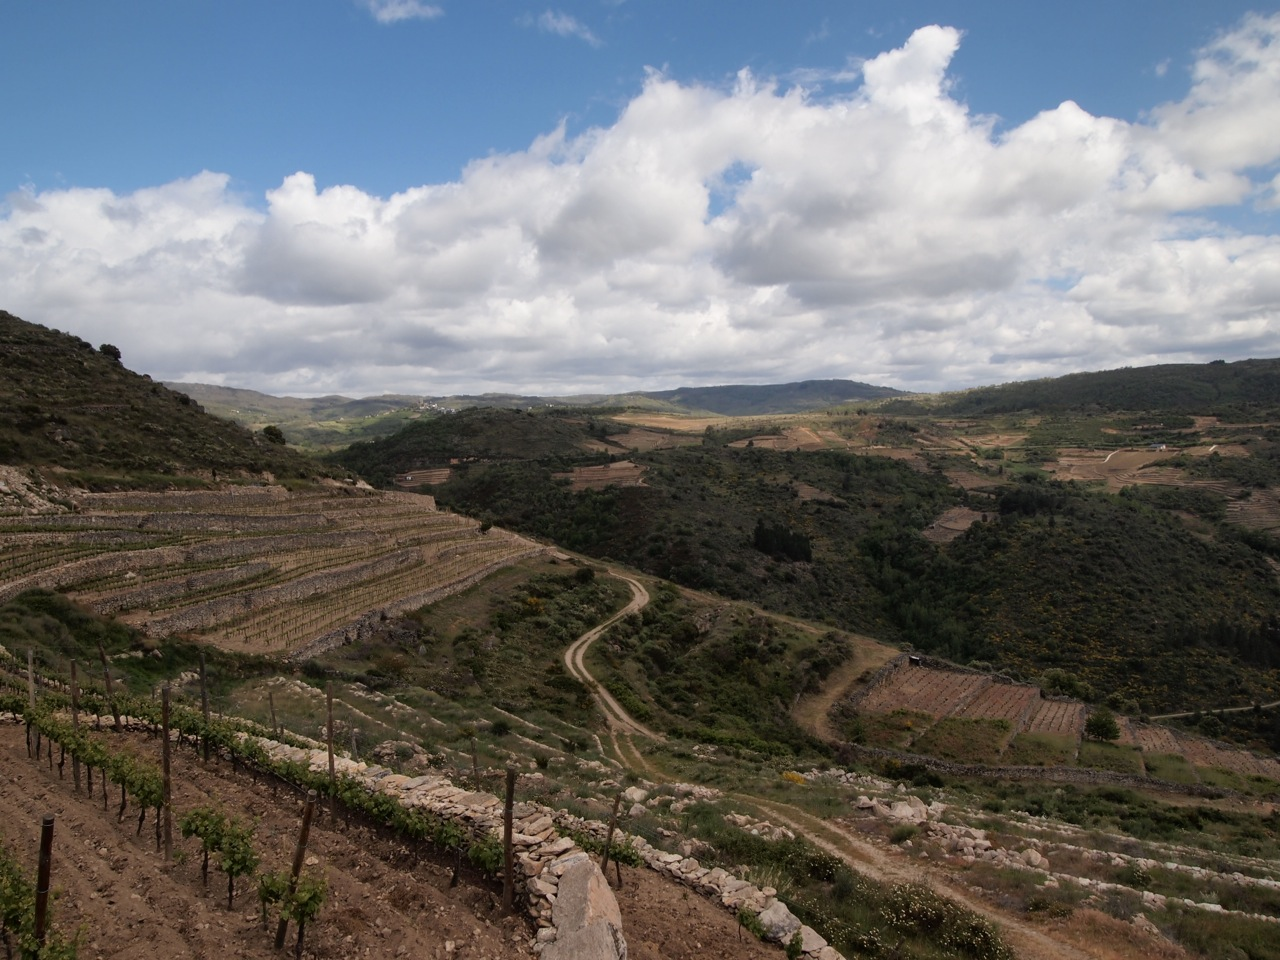 Vineyards in the Bibei Valley of Valdeorras. Notice how many new vineyard plots are being carved out.